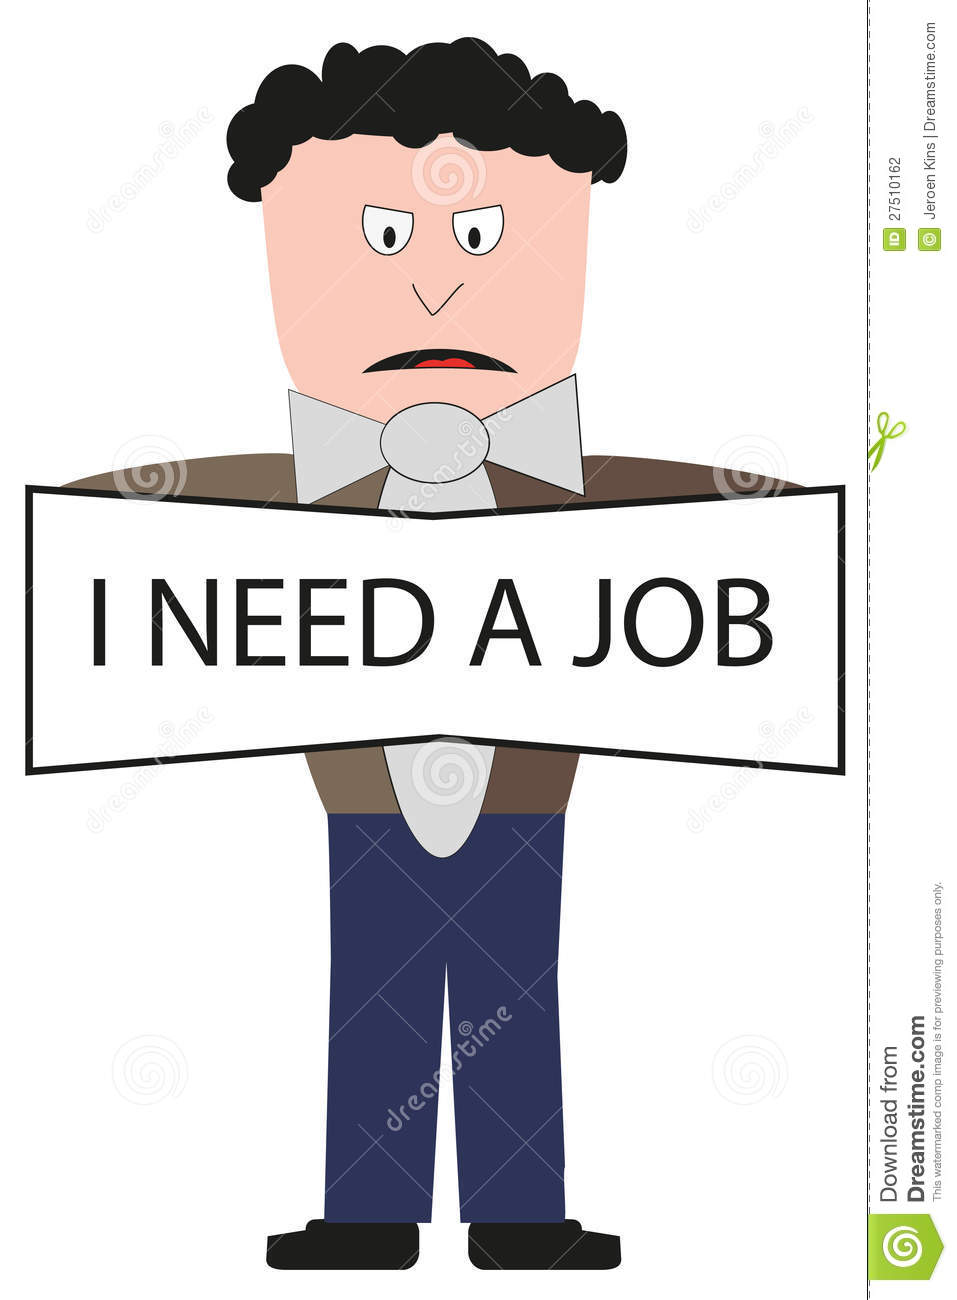 LOOKING FOR A JOB!!!?